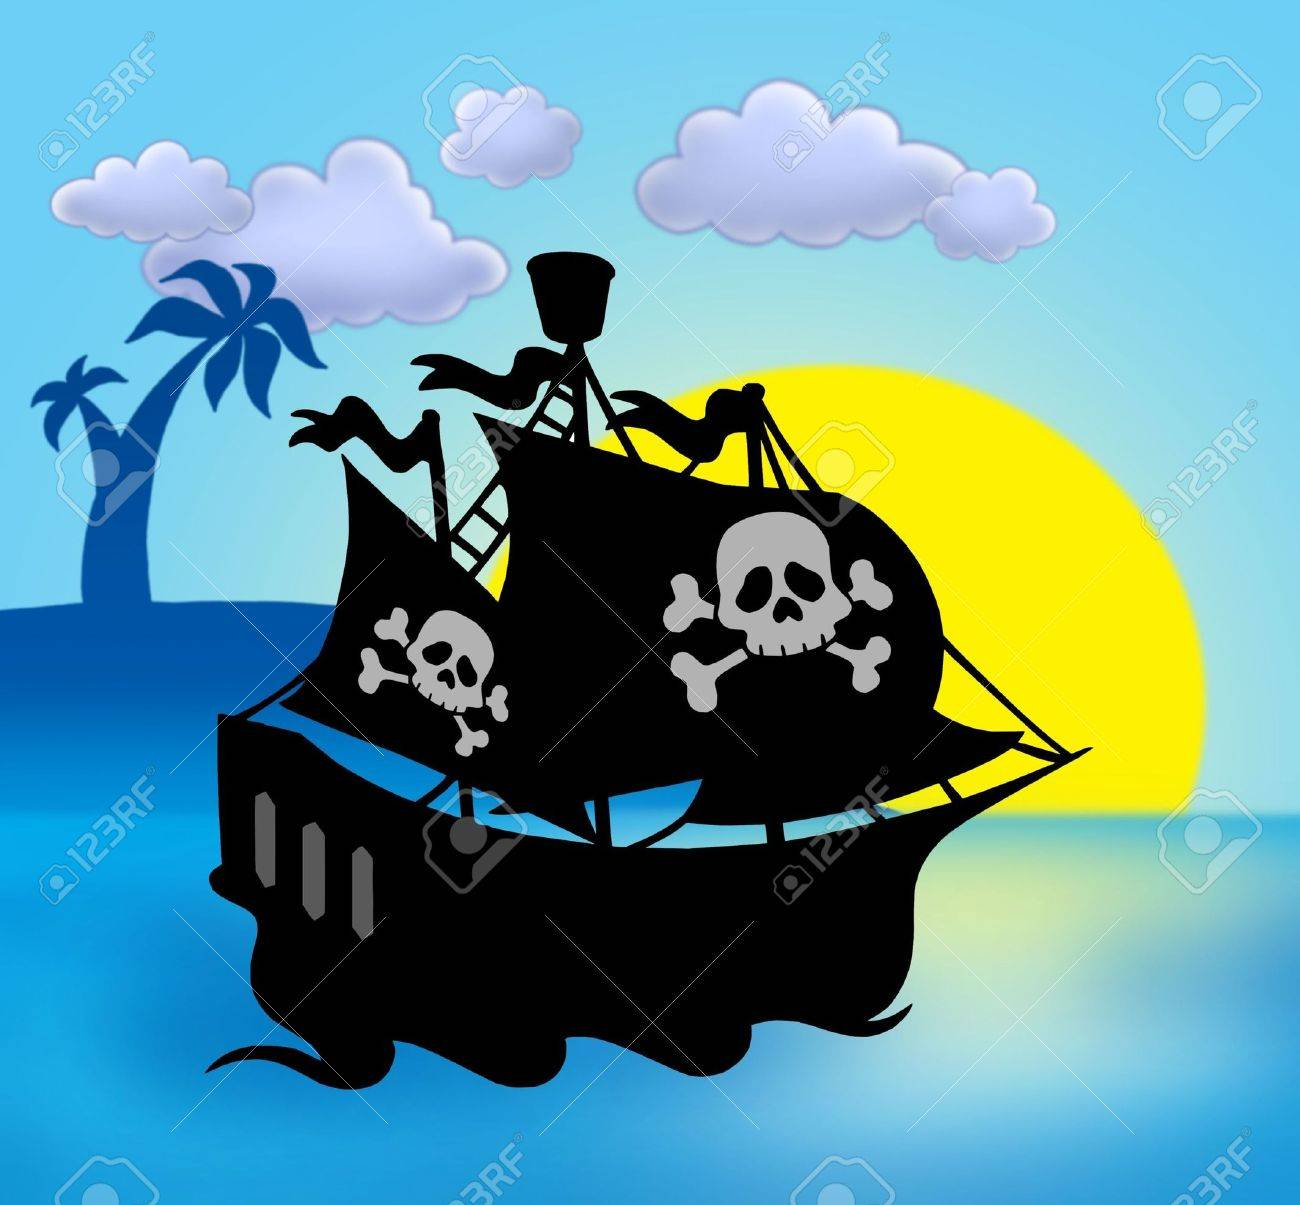 sunset with pirate ship silhouette color illustration stock